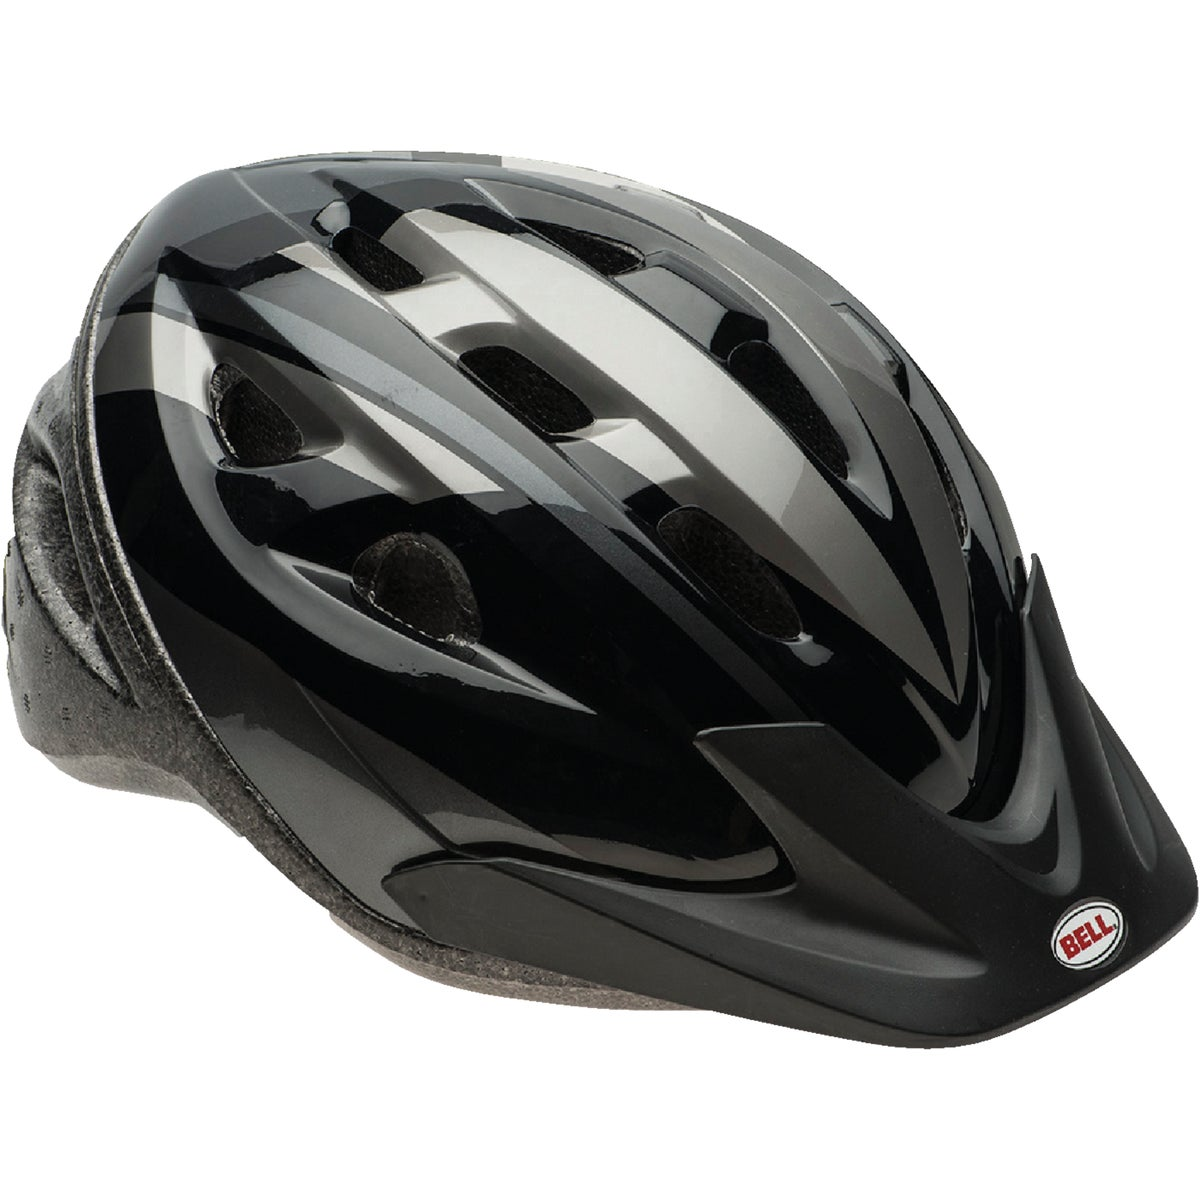 14+ M/L ADULT HELMET - 7049699 by Bell Sports